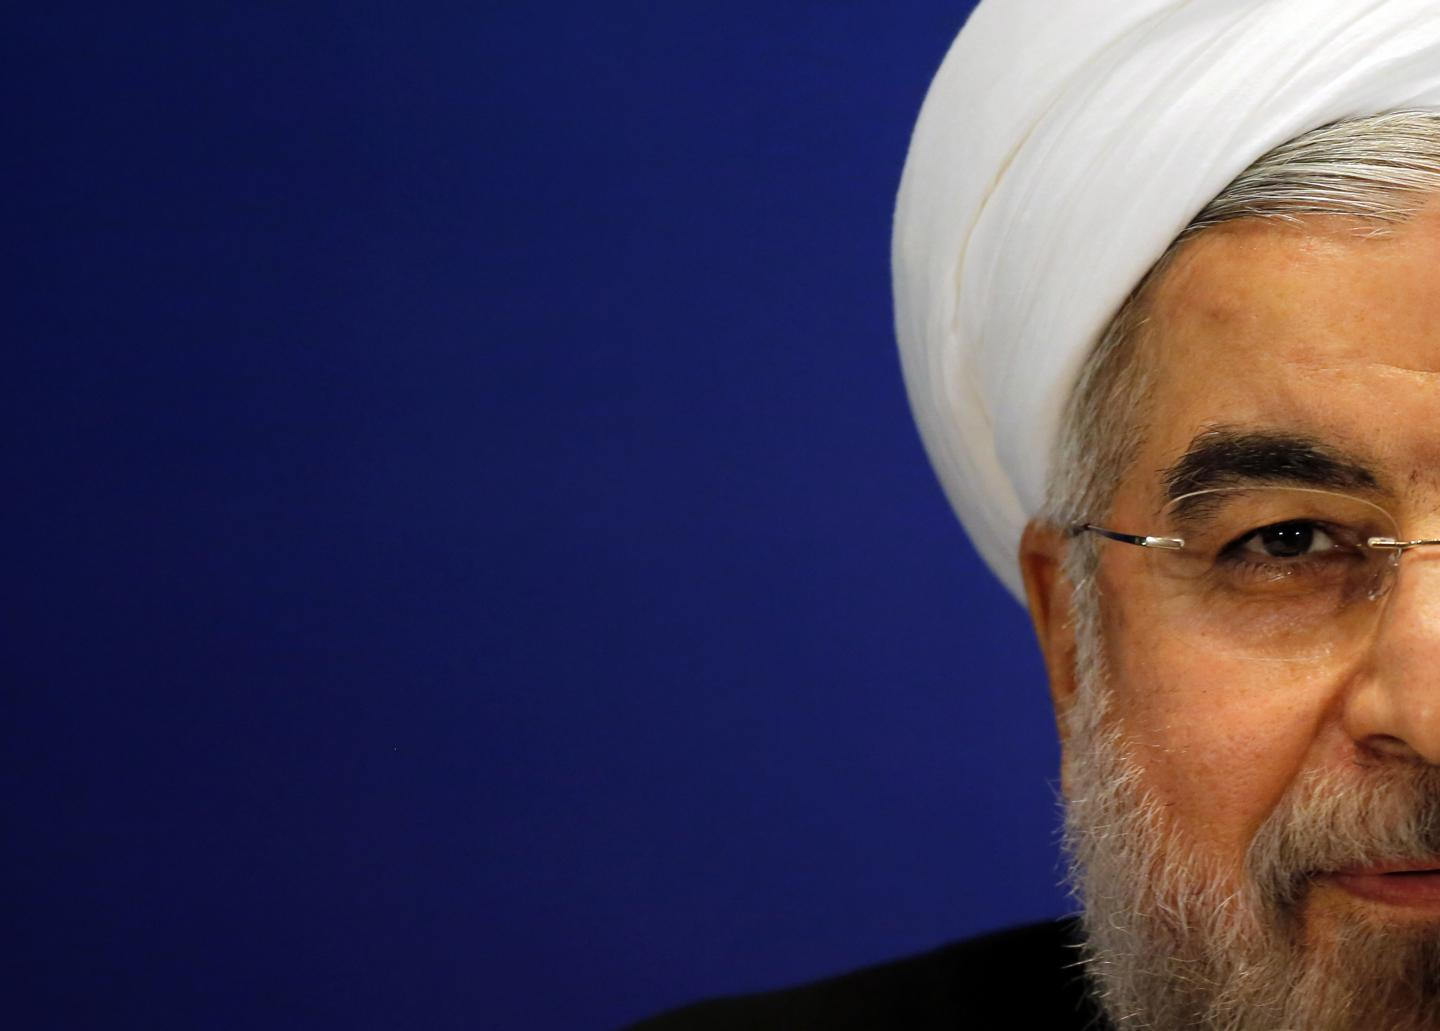 Point Break: Is Iran Ready to Retaliate Against America?